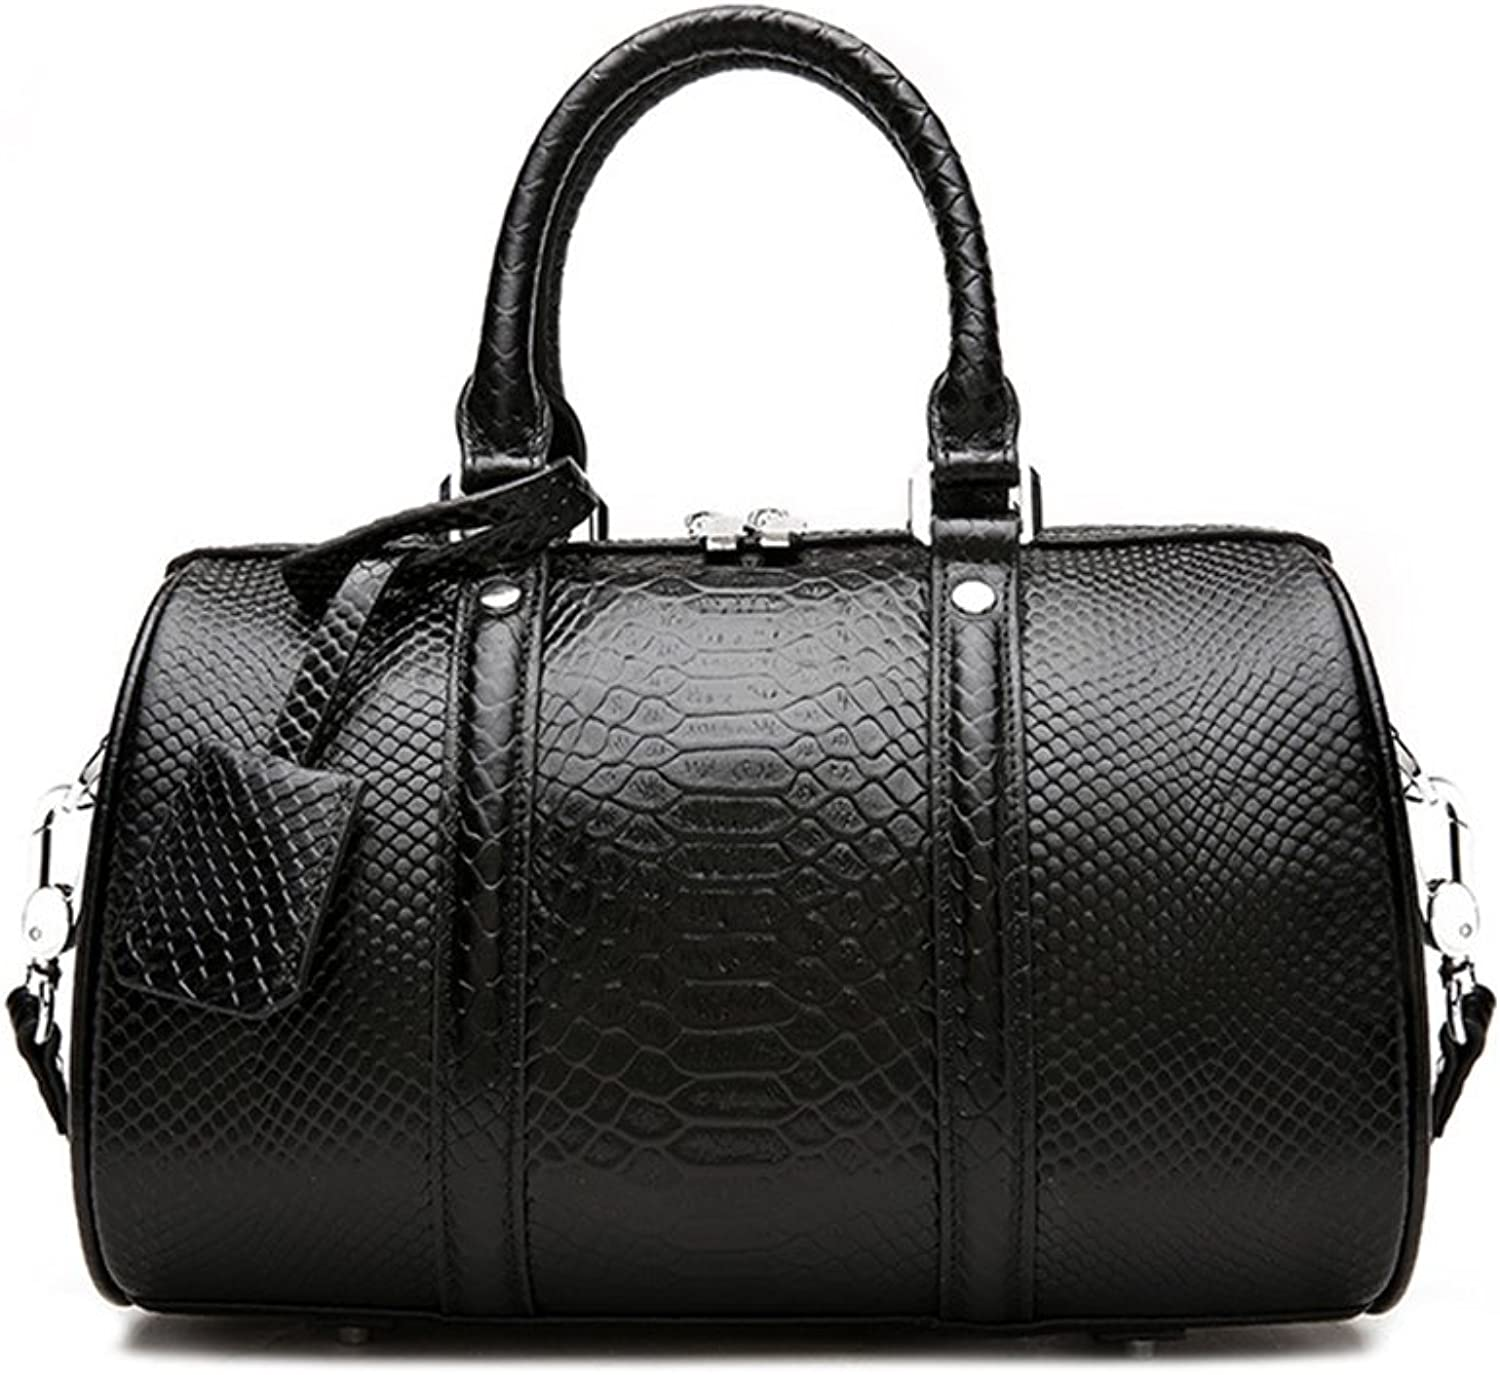 Sturdy New Snakeskin Pattern First Layer Leather Handbag Shoulder Portable Ladies Handbag Stereo Stereotypes Simple and Practical Large Capacity (color   Black)